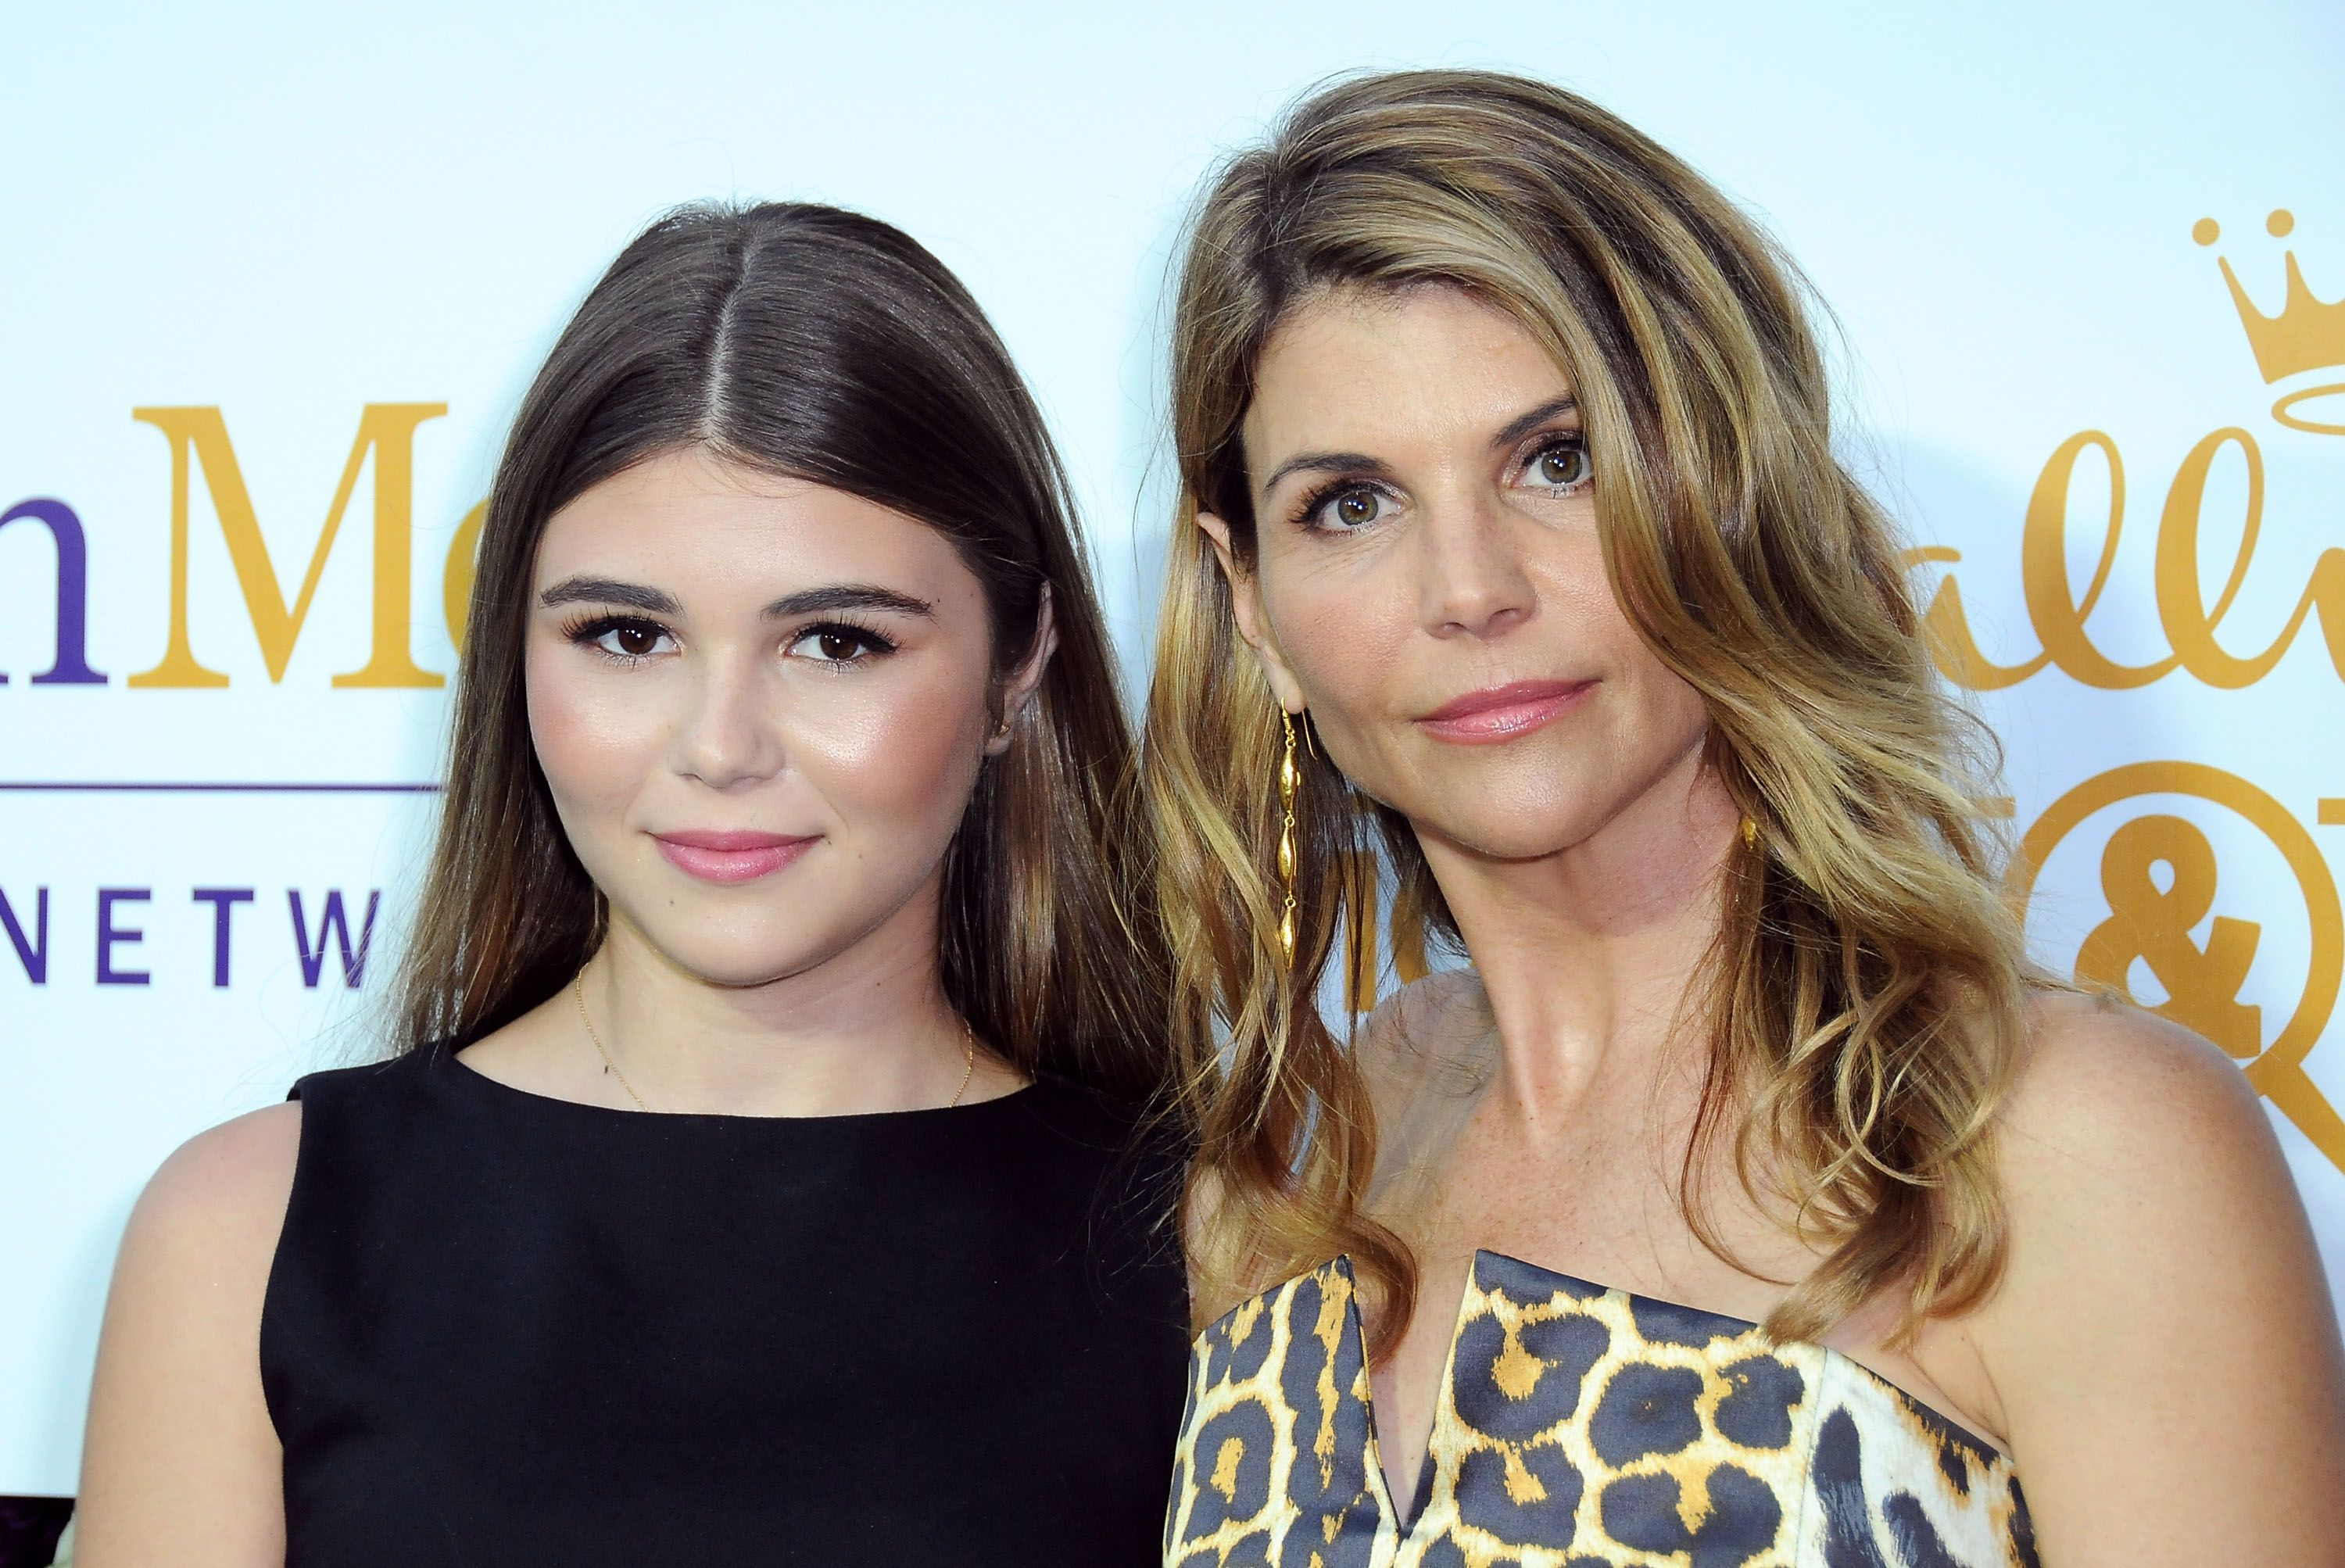 Actress Lori Loughlin and daughter Olivia Jade Giannulli at the 2015 Summer TCA Tour - Hallmark Channel and Hallmark Movies And Mysteries on July 29, 2015 | Photo: Getty Images